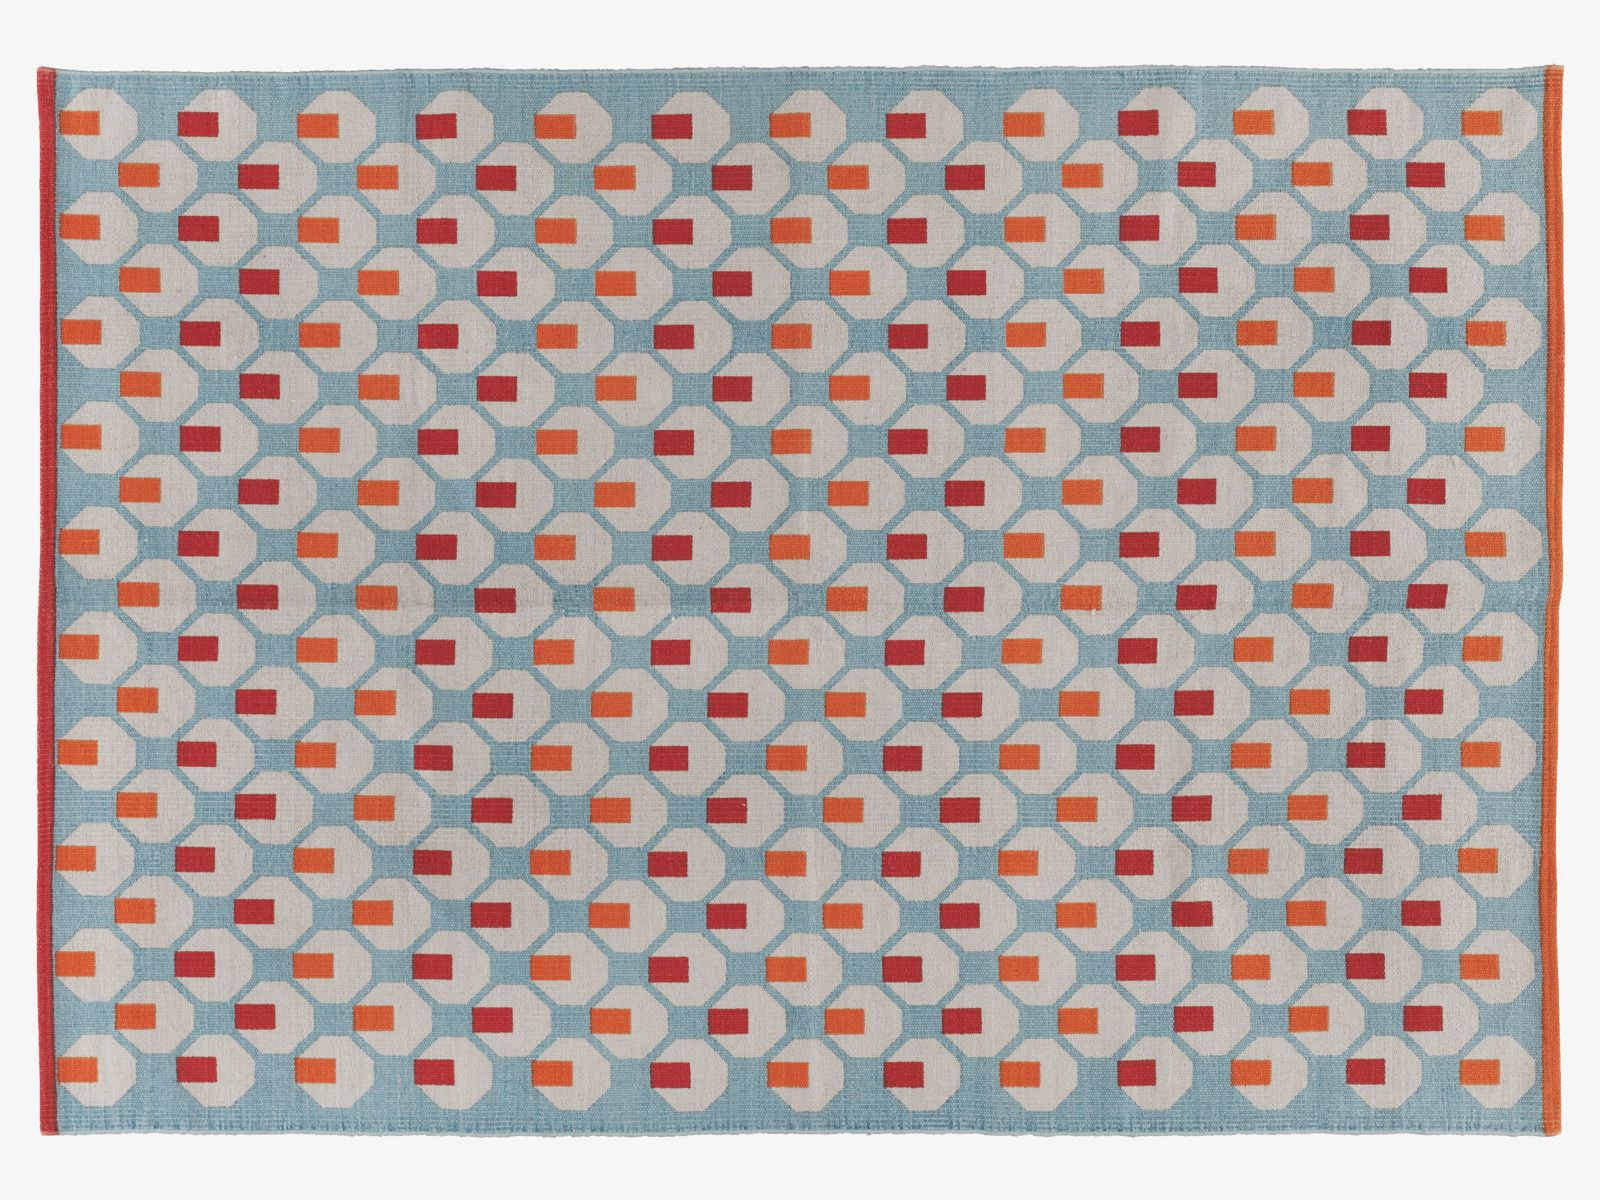 Habitat The Uk Home Of Remarkable Design At Affordable Prices Rugs Cotton Rug Rug Sale